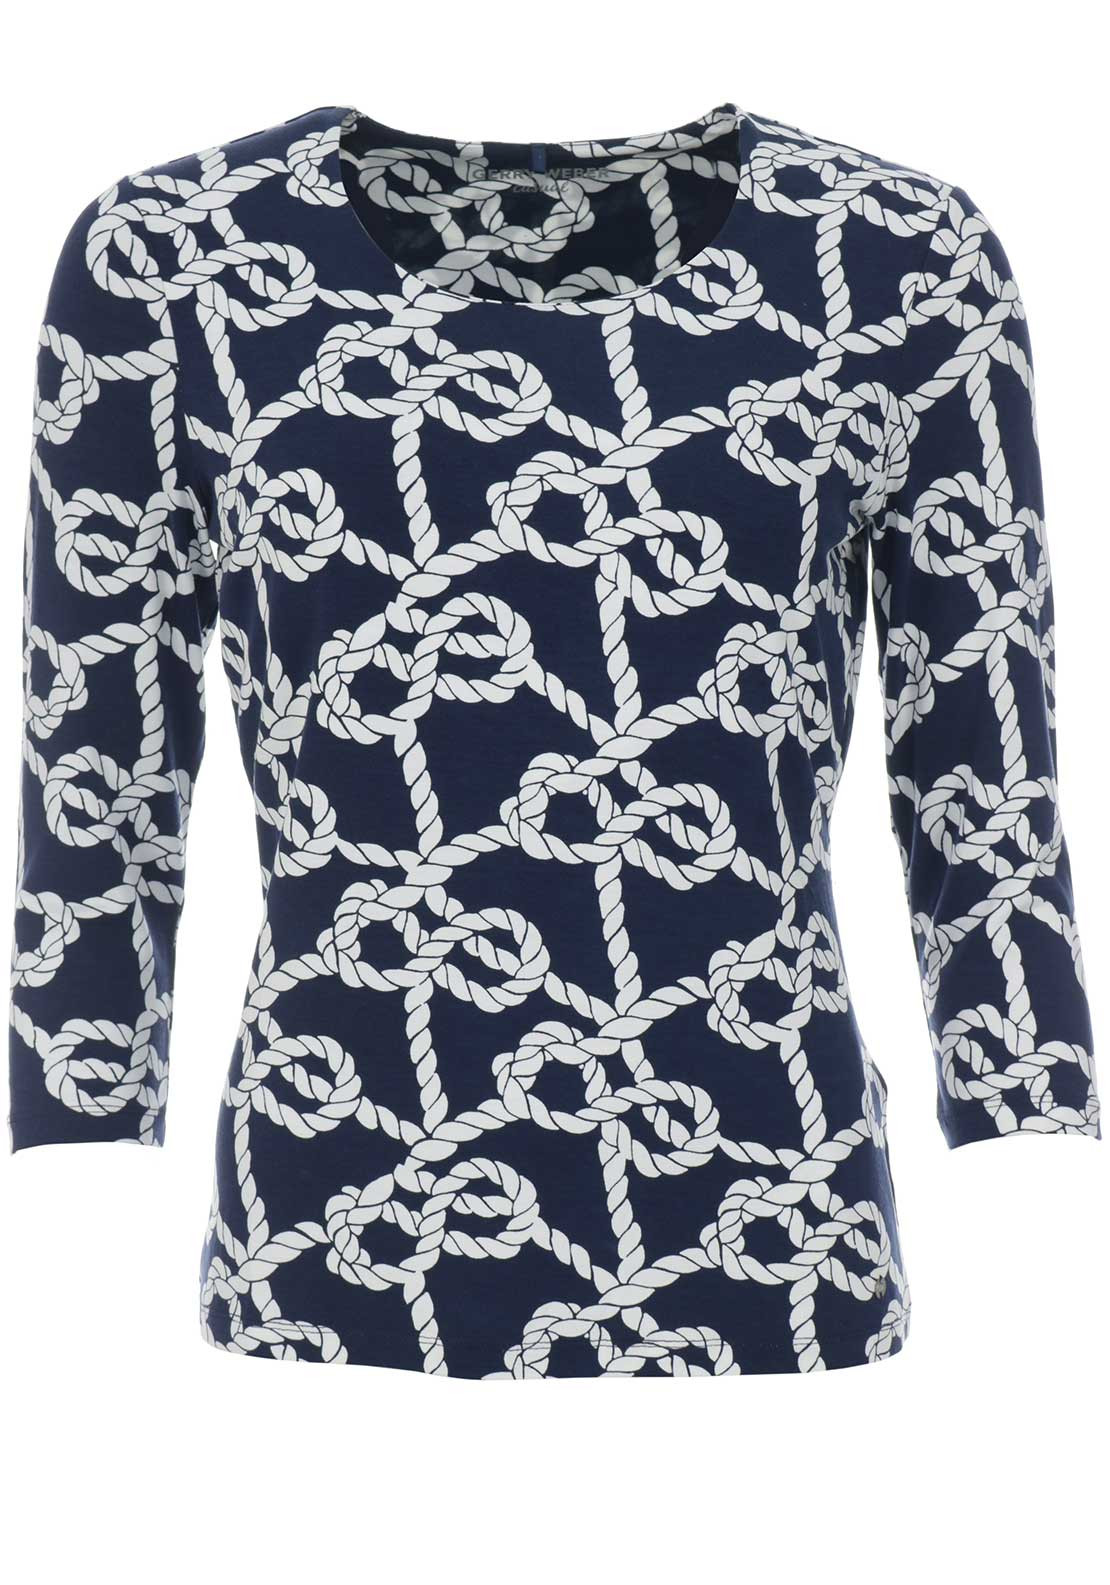 Gerry Weber Rope Print Top, Navy & White